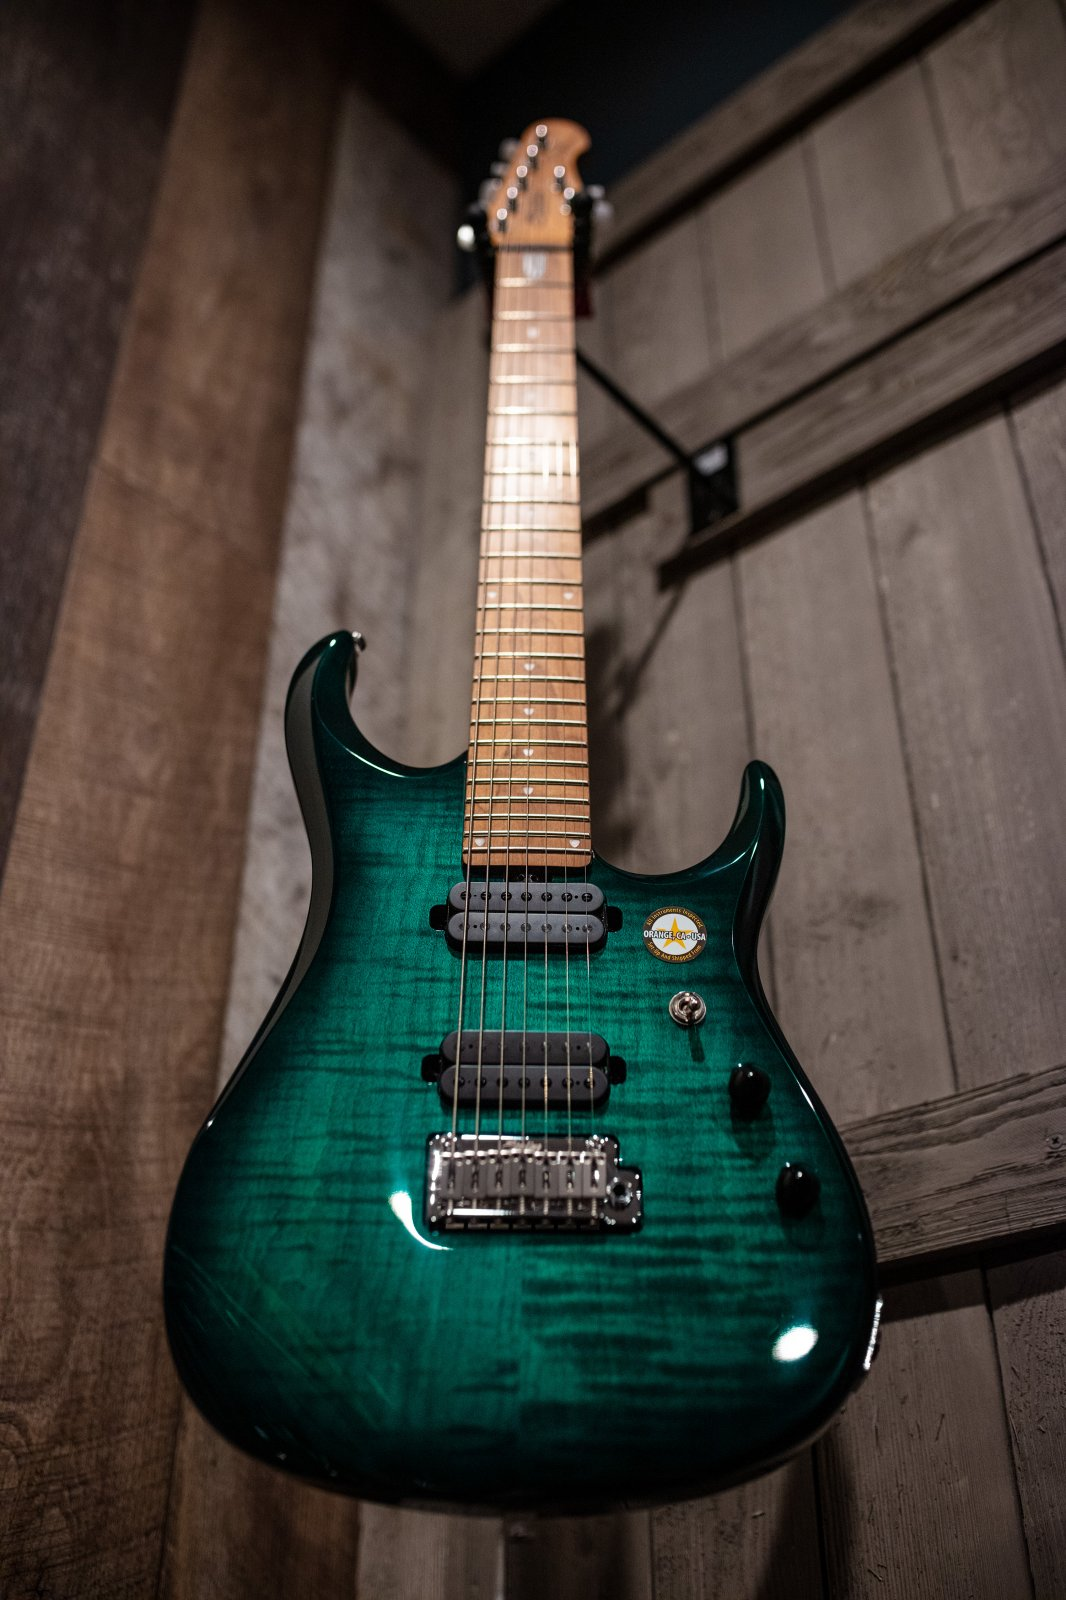 Sterling Signature in Flame Maple Teal Burst, 7 String Electric Guitar JP157FM-TL